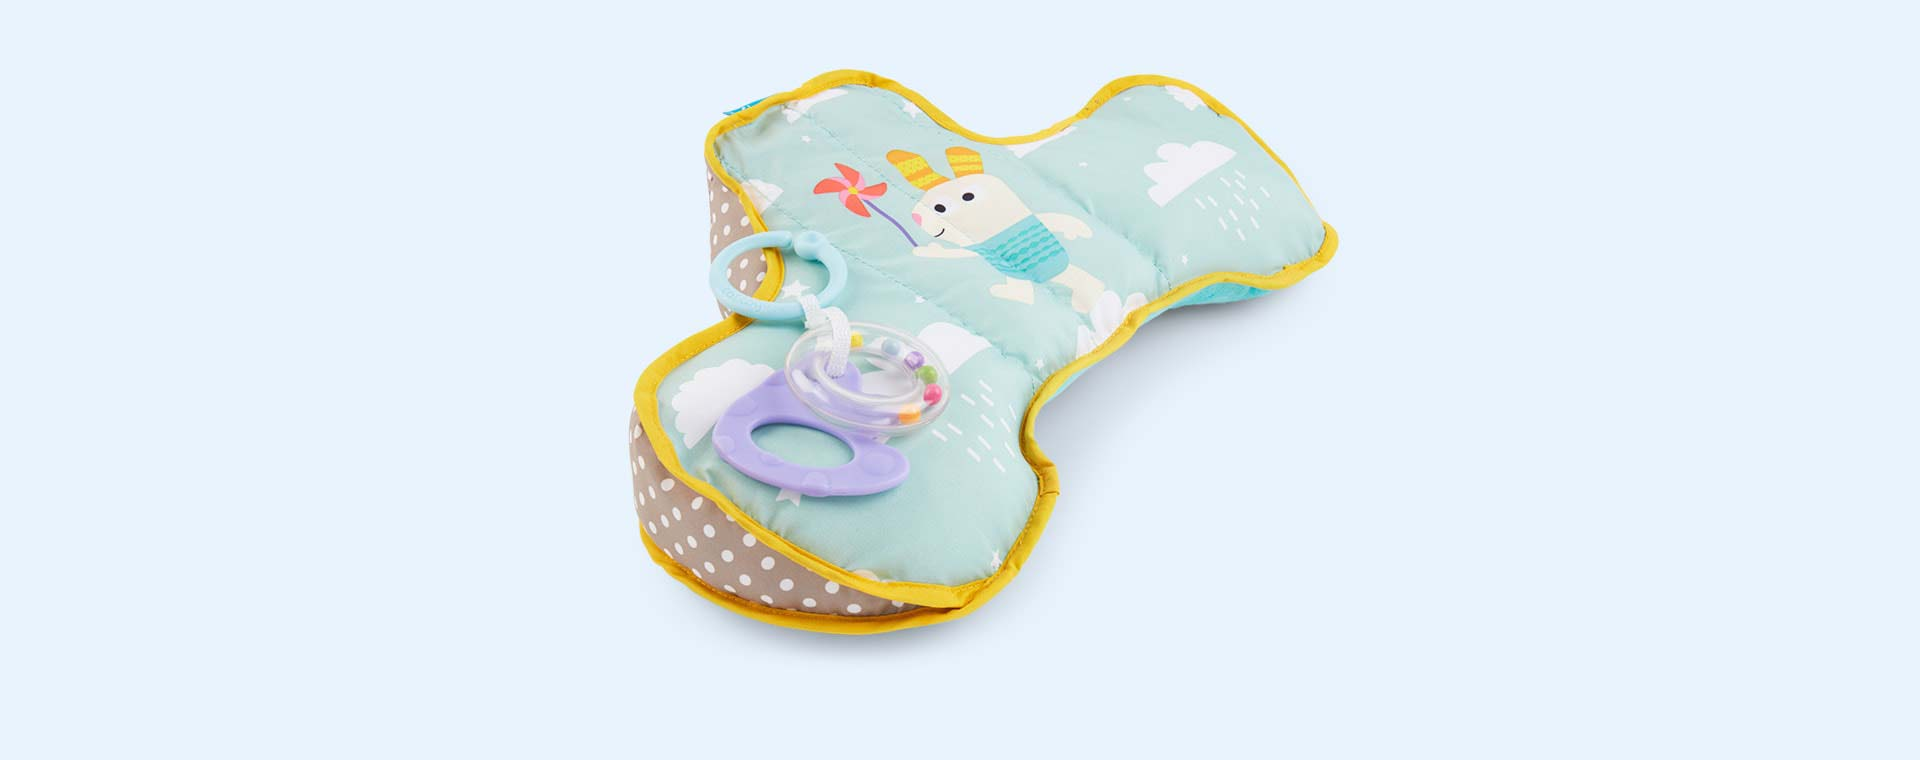 Green taf toys Developmental Pillow